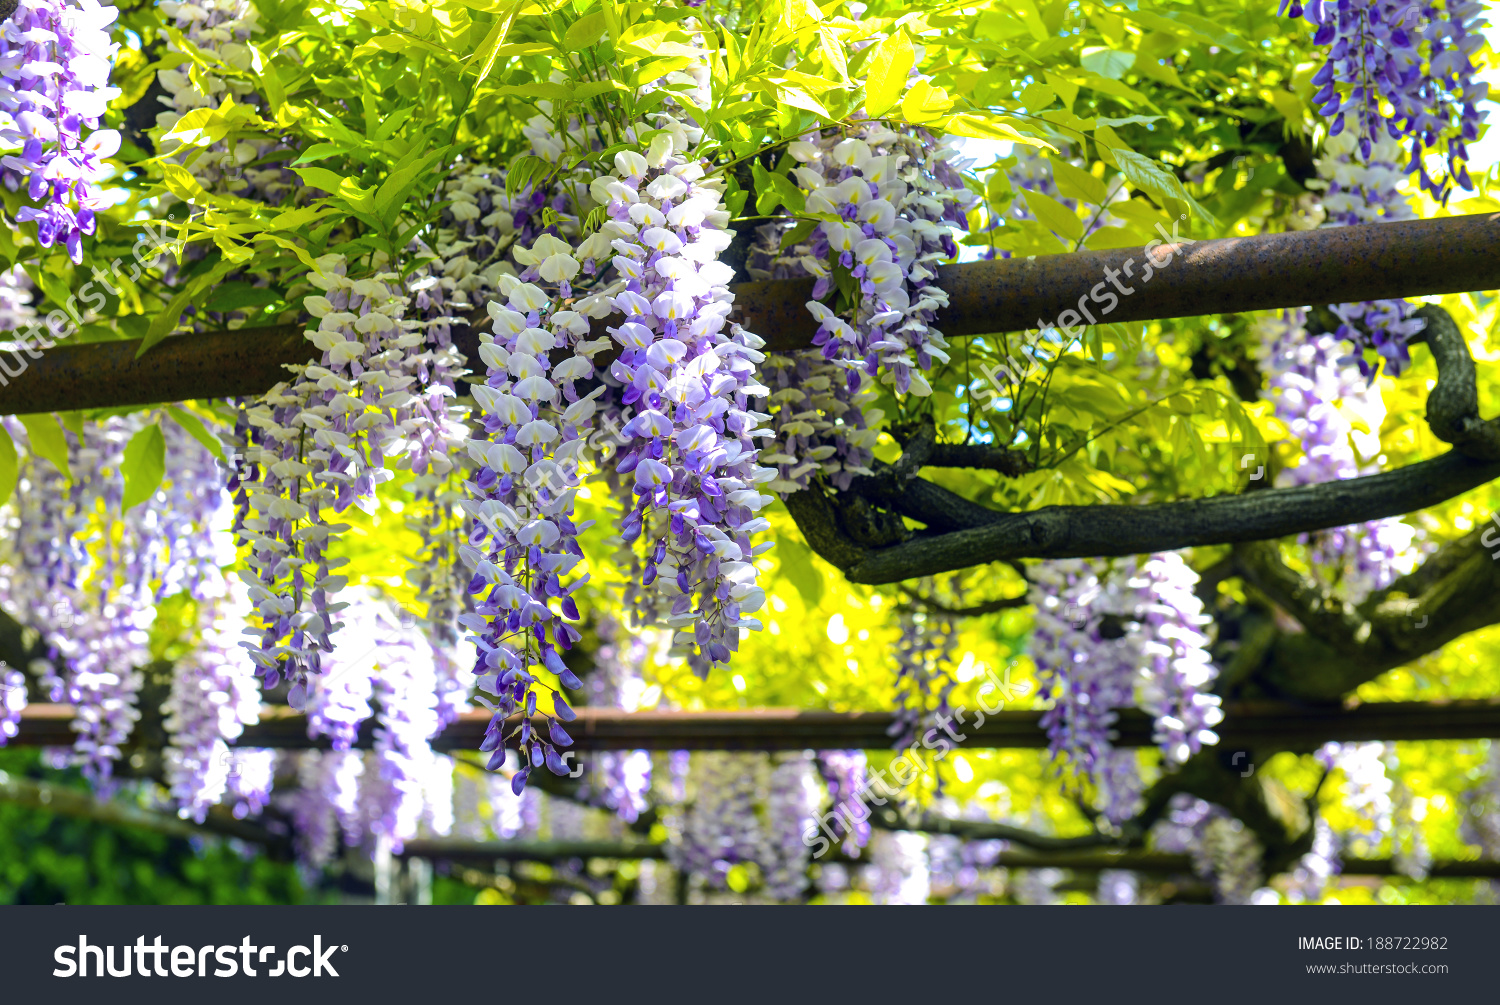 Pergola With Tendrils Of Chinese Wisteria Stock Photo 188722982.